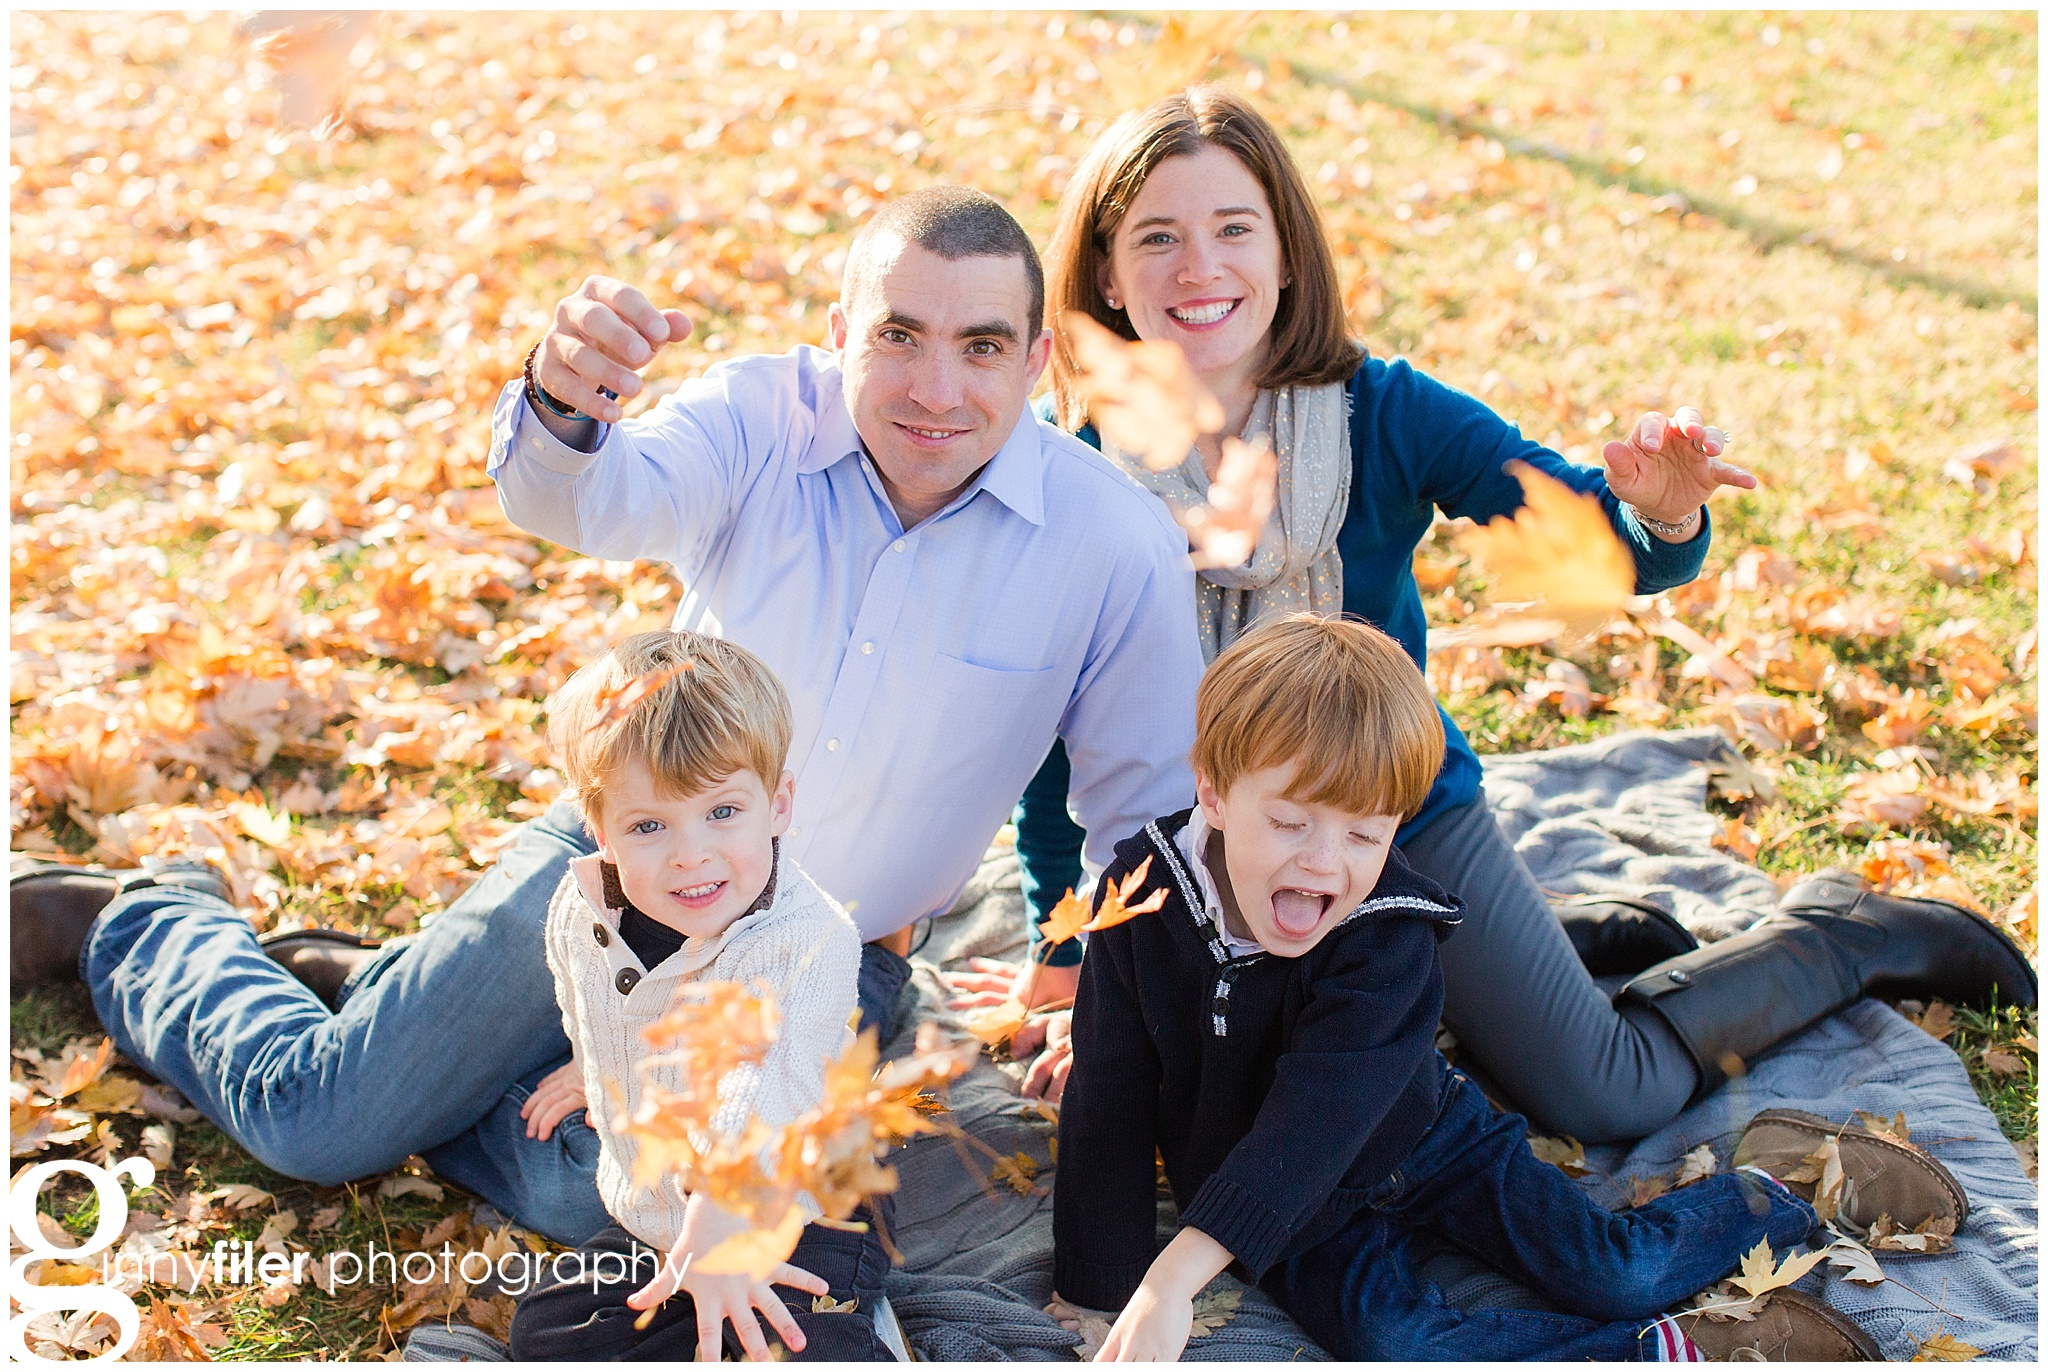 family_photography_riedy_0018.jpg